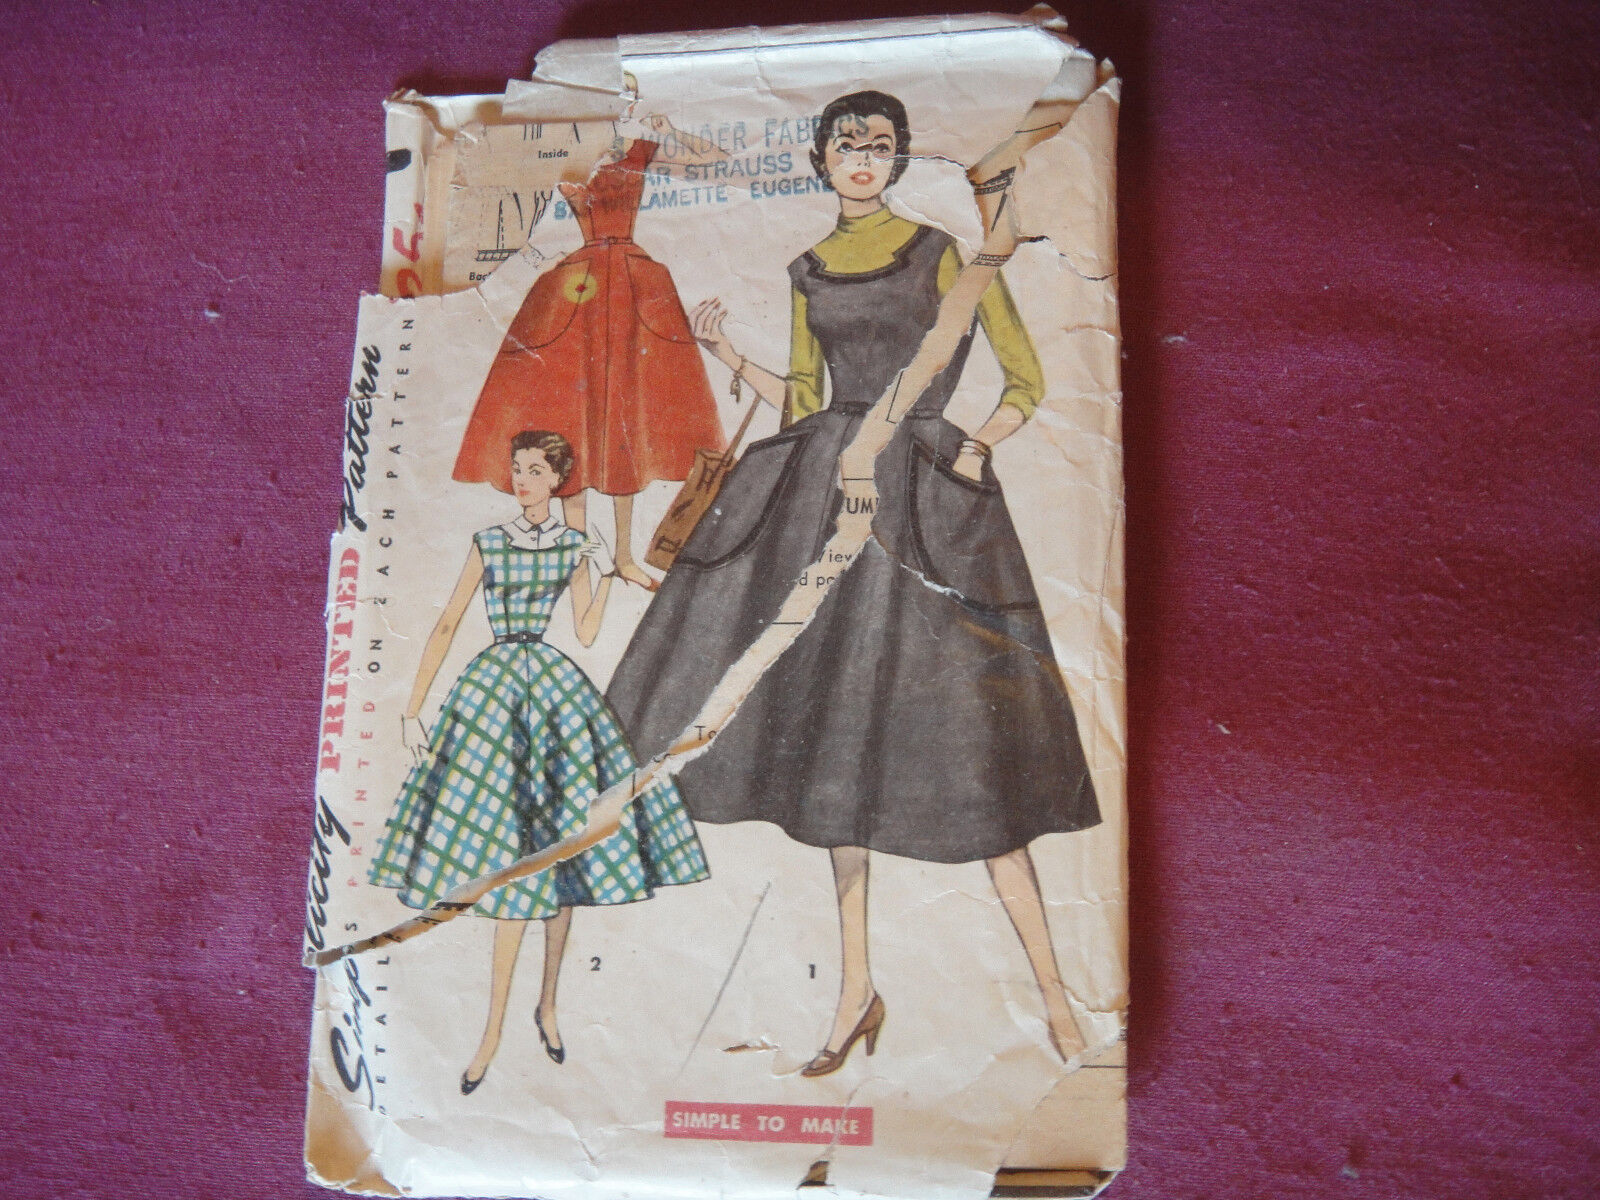 Very retro cool Vintage Jumper Romper Pattern Make Pattern to add to your vintage wardrobe or display in sewing room! Size 14..36 in bust